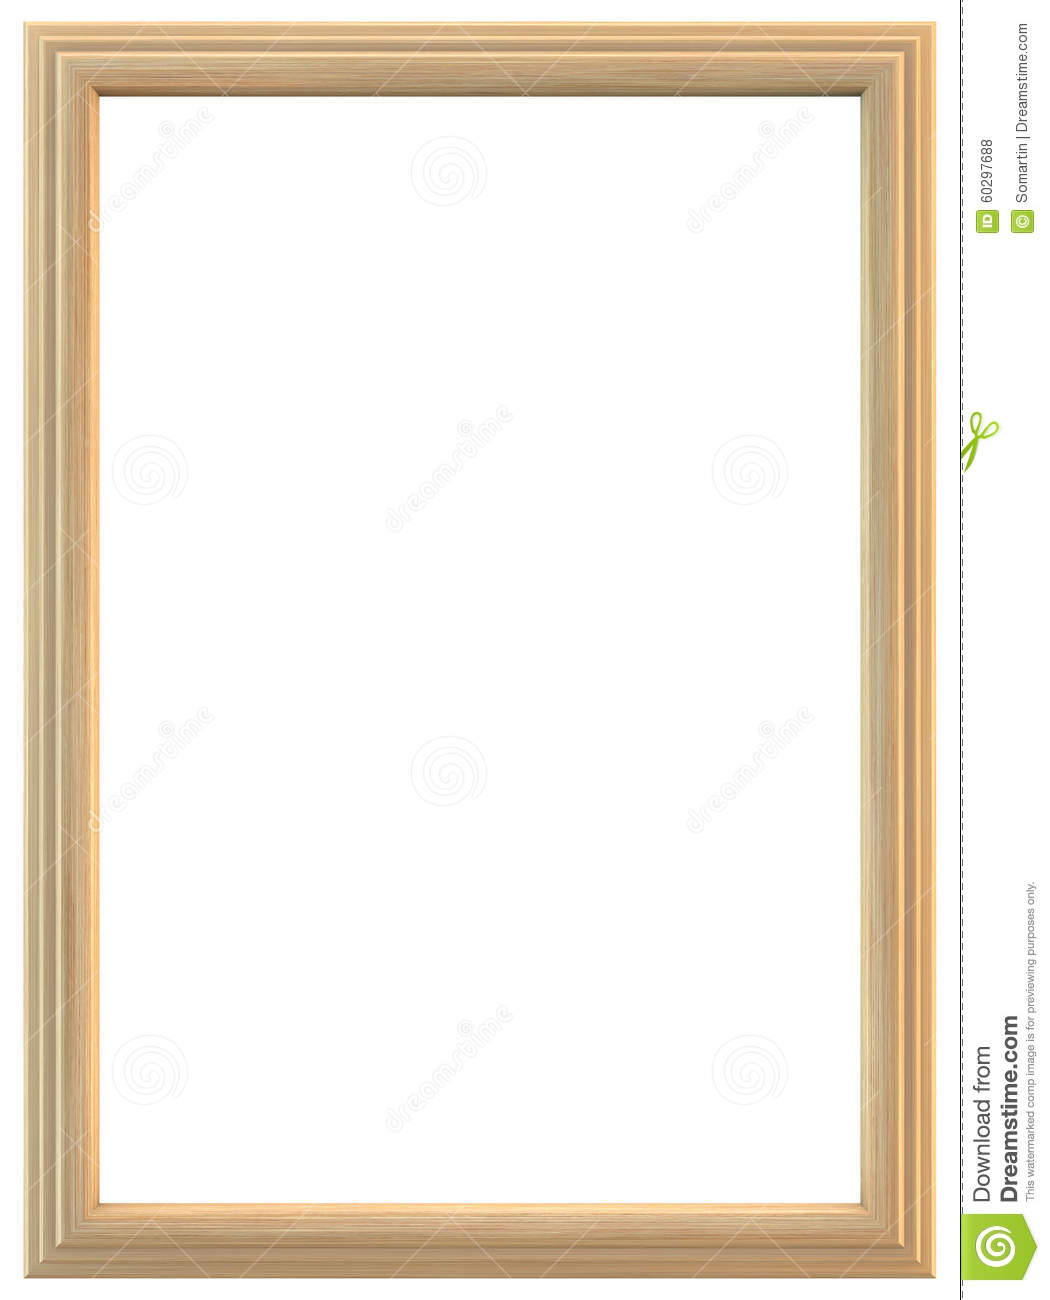 Light Wooden Frame Stock Photo Image Of Isolated Photo 60297688